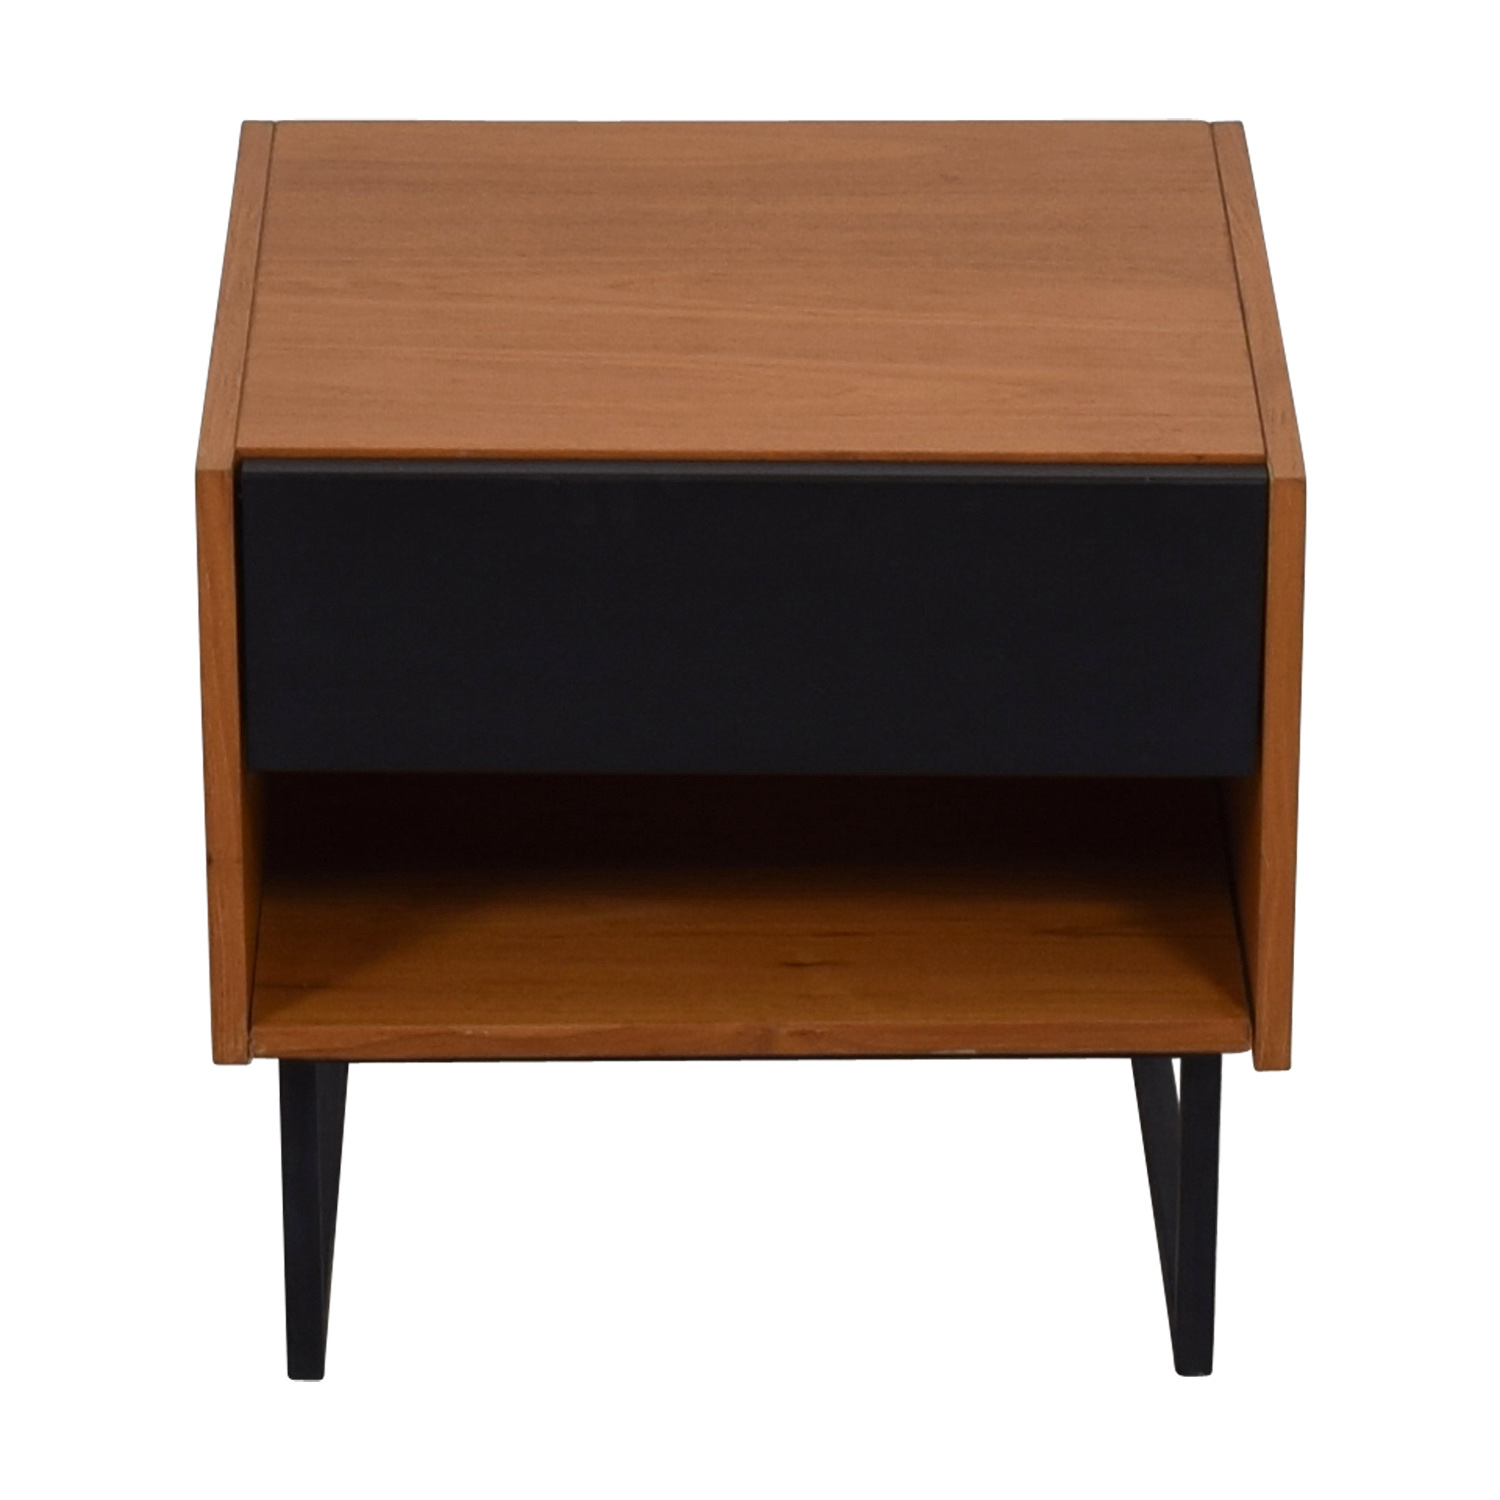 Crate & Barrel Crate & Barrel Single Drawer Side Table dimensions